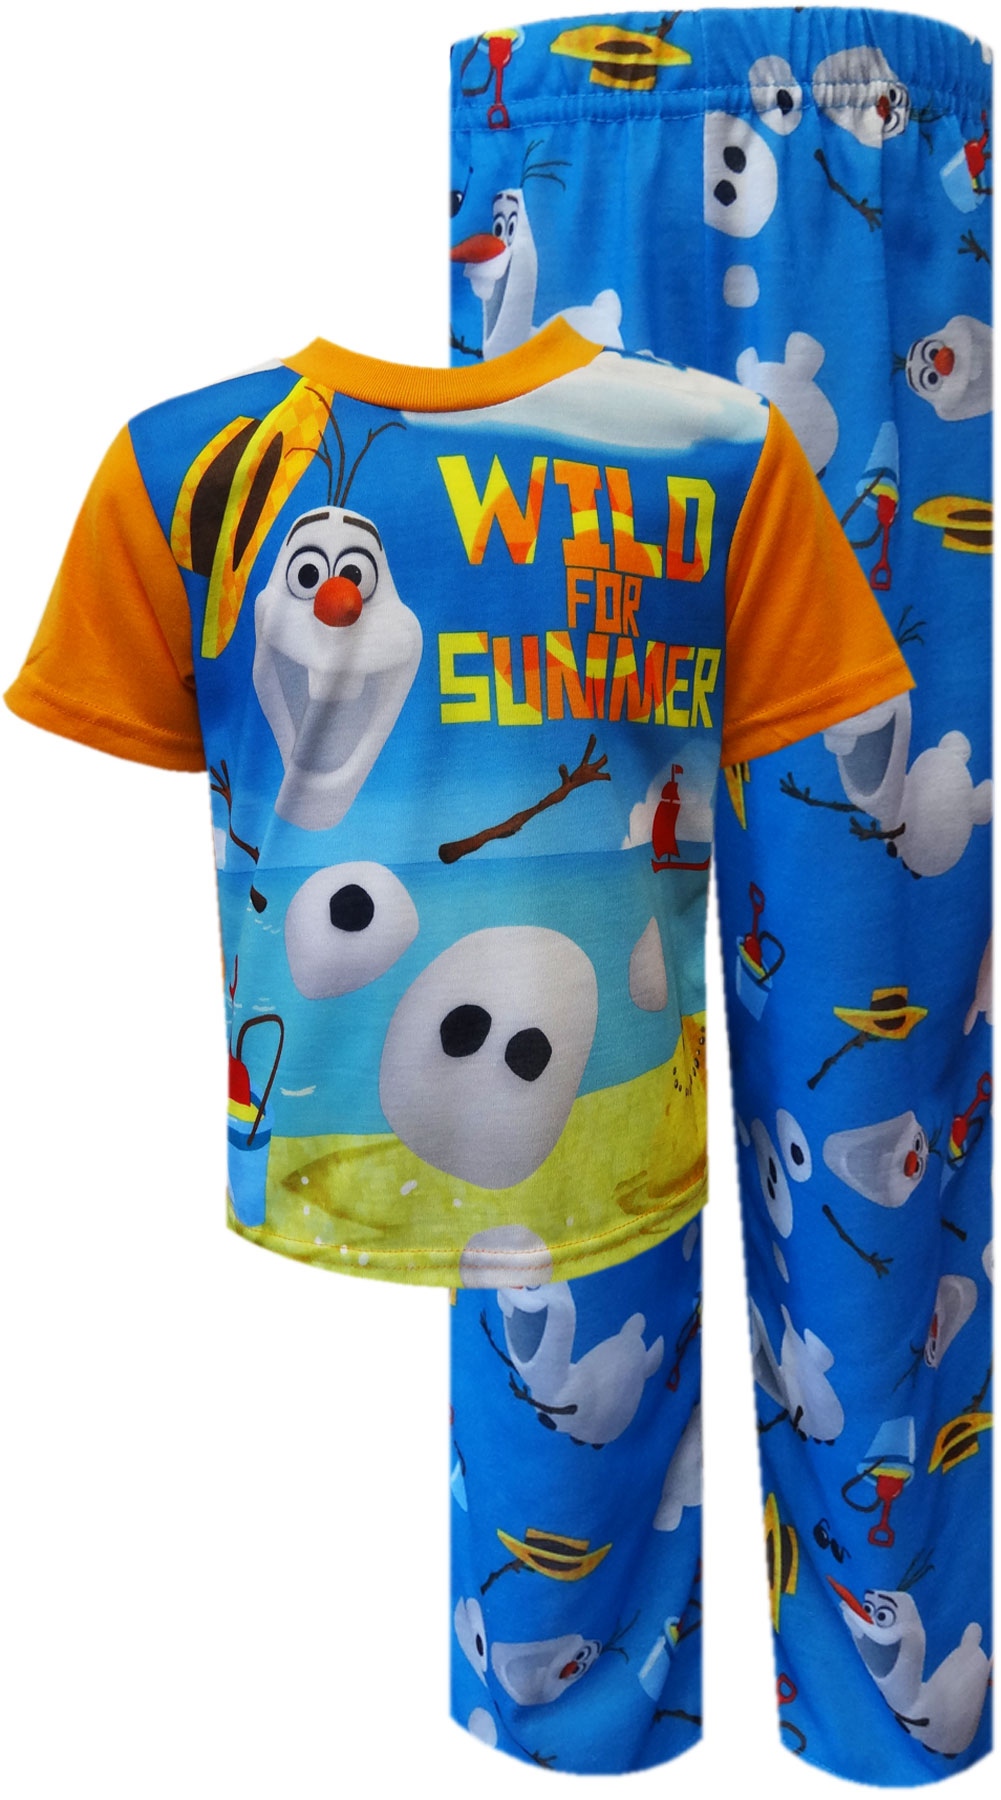 Image of Disney Frozen Olaf Wild For Summer Pajama for boys